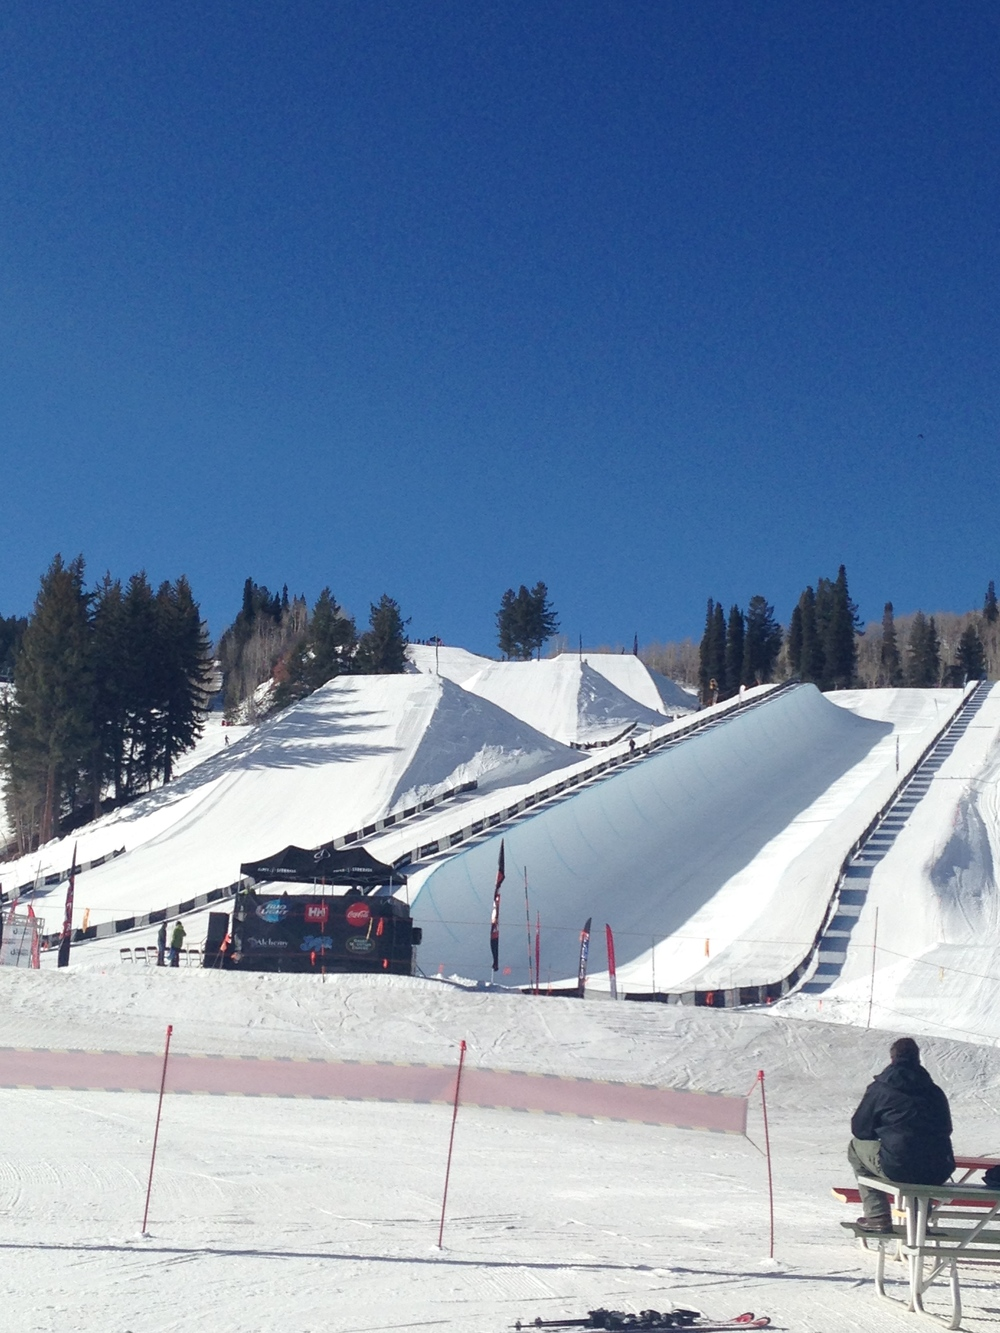 Massive halfpipe and jumps ready for the X Games